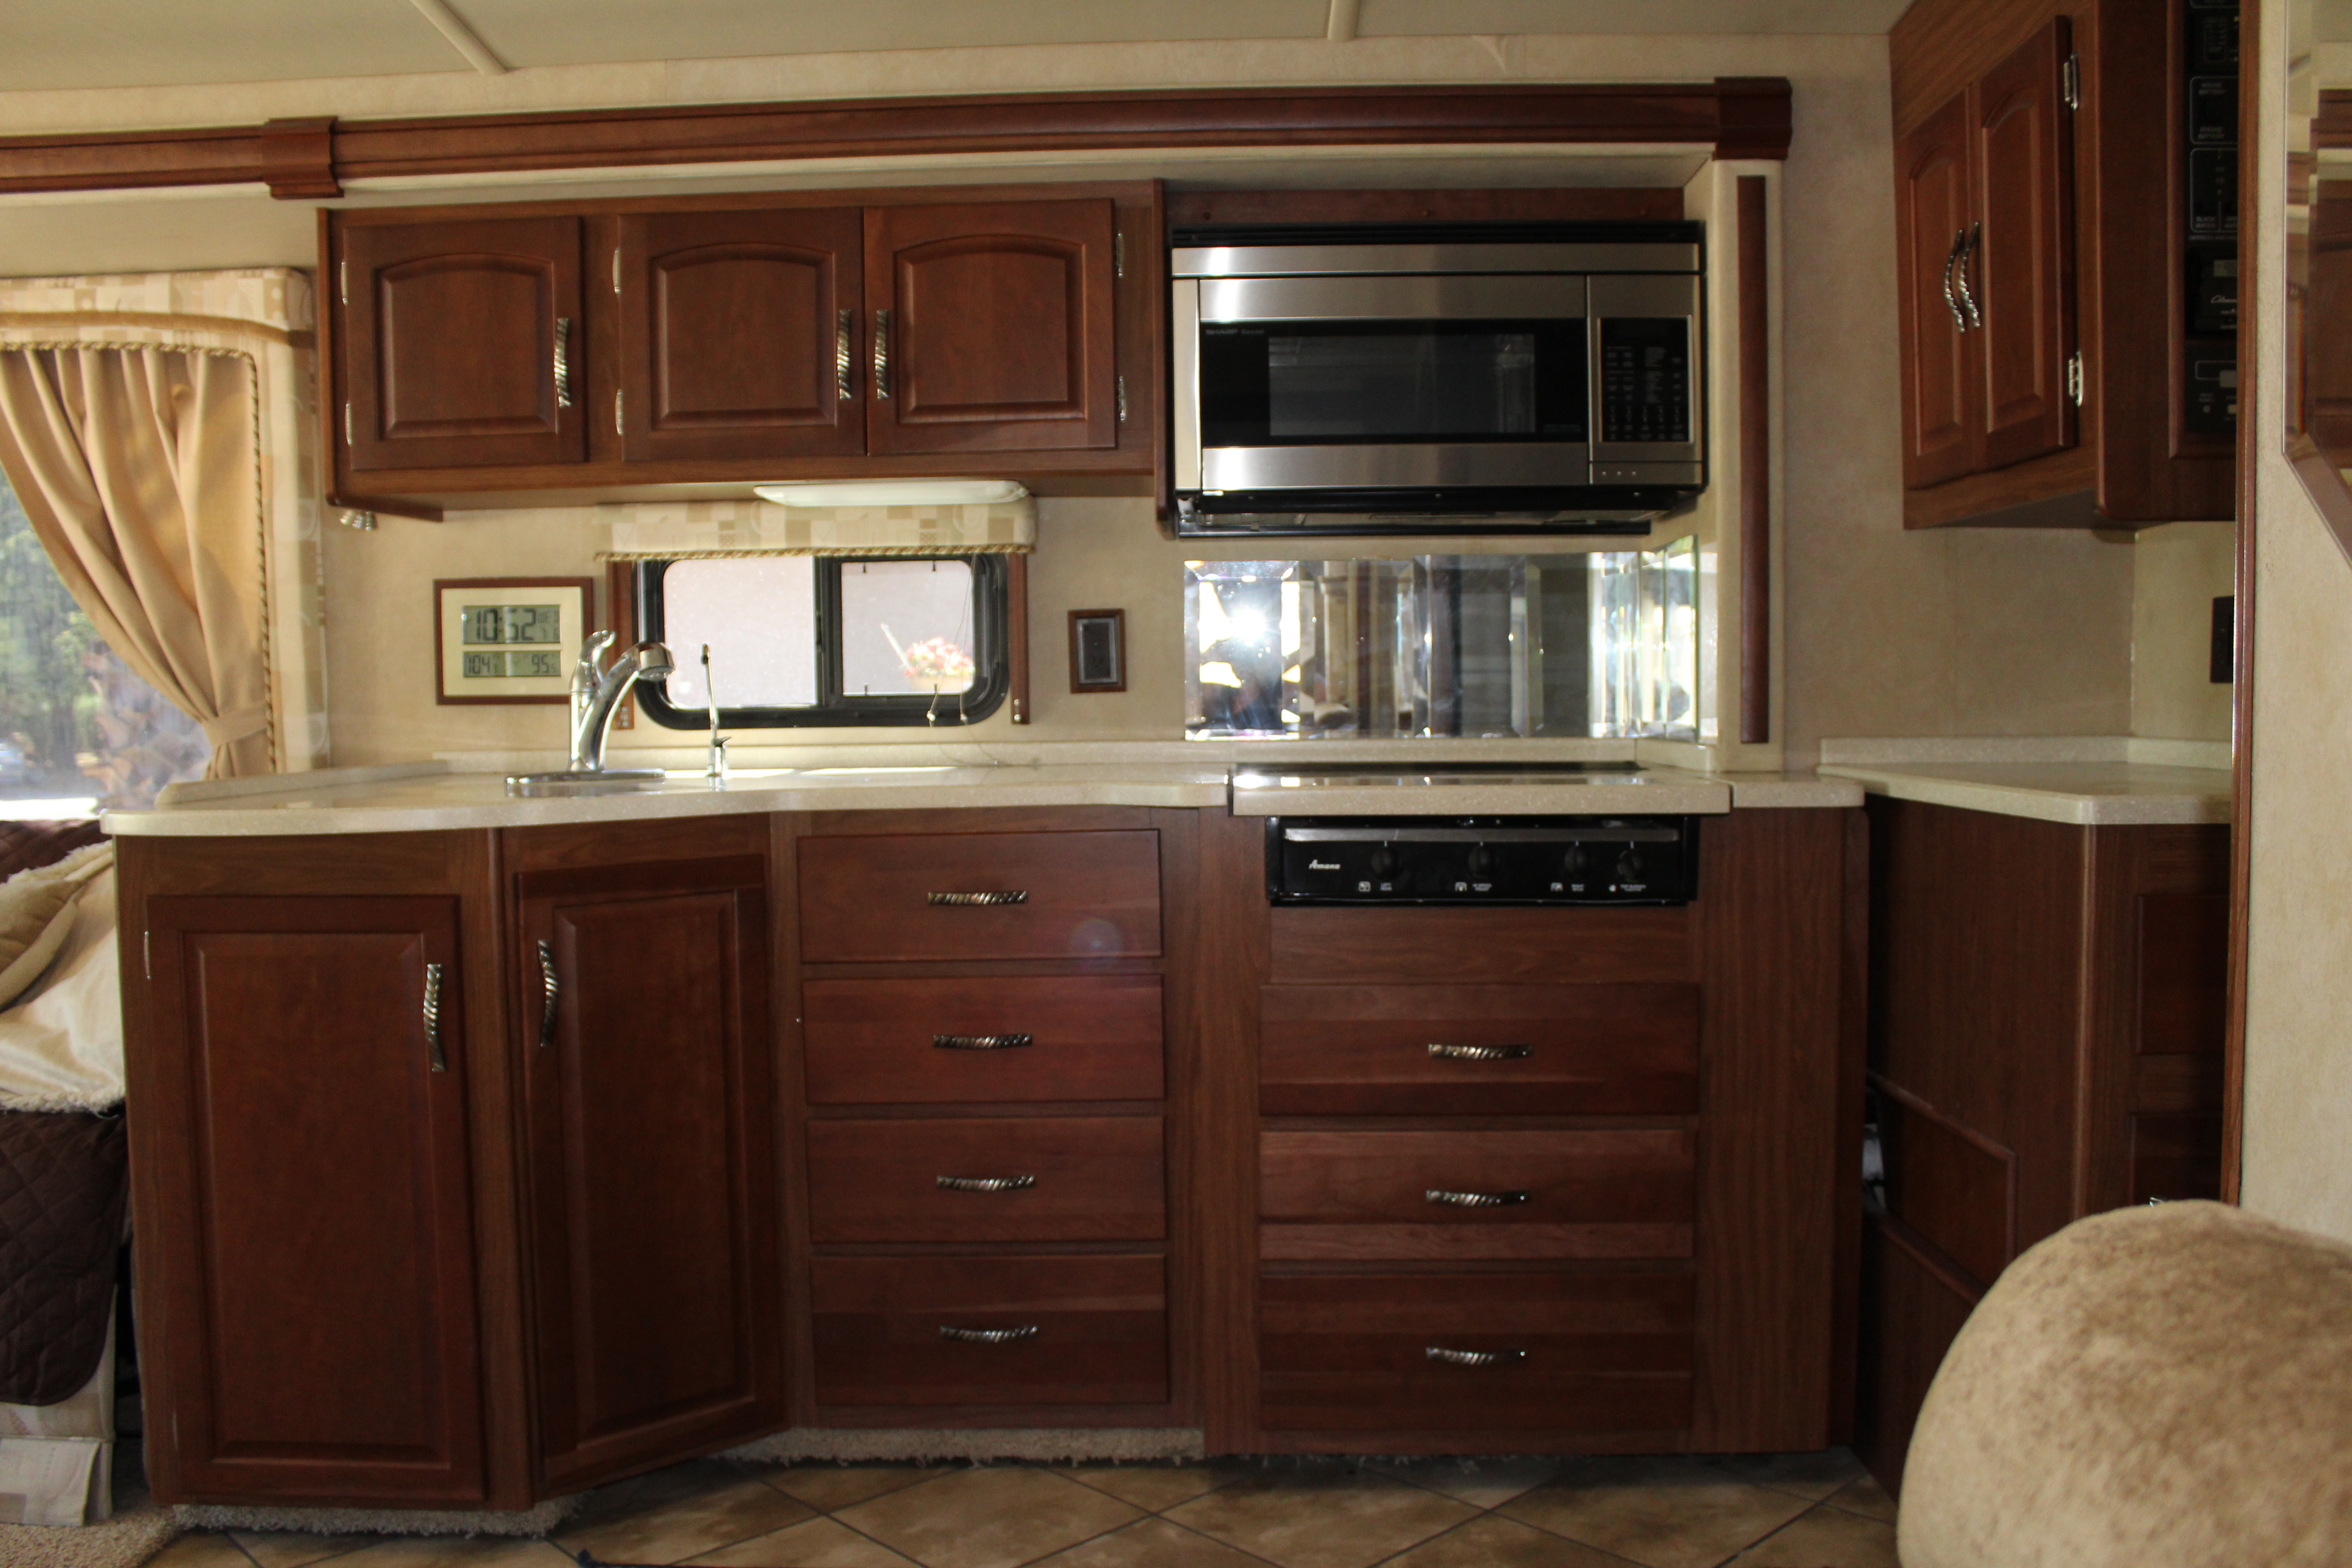 Well equipped kitchen, corian countertops, SS appliances,gas stove and microwave/convection oven.. Itasca Meridian 2006